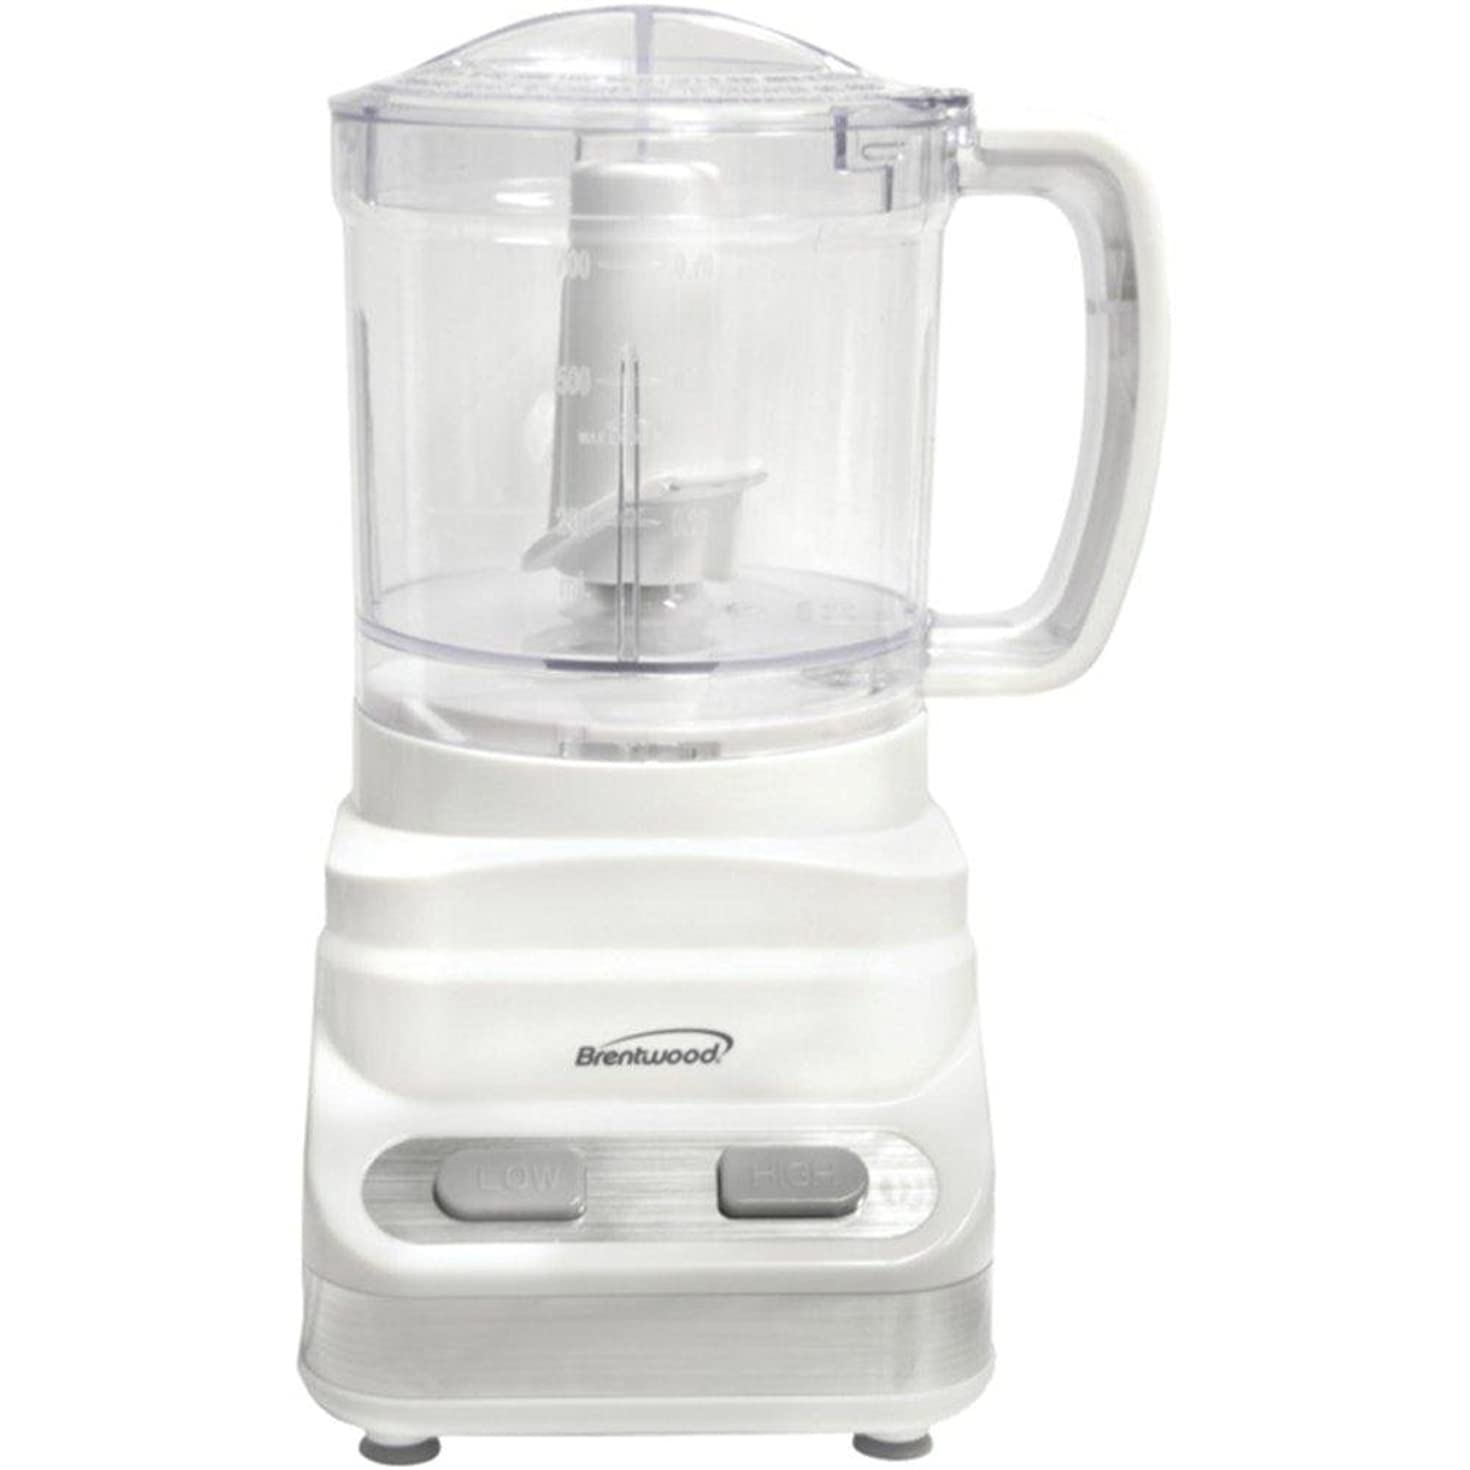 Brentwood FP-546 3 Cup Food Processor Consumer Electronics Electronics